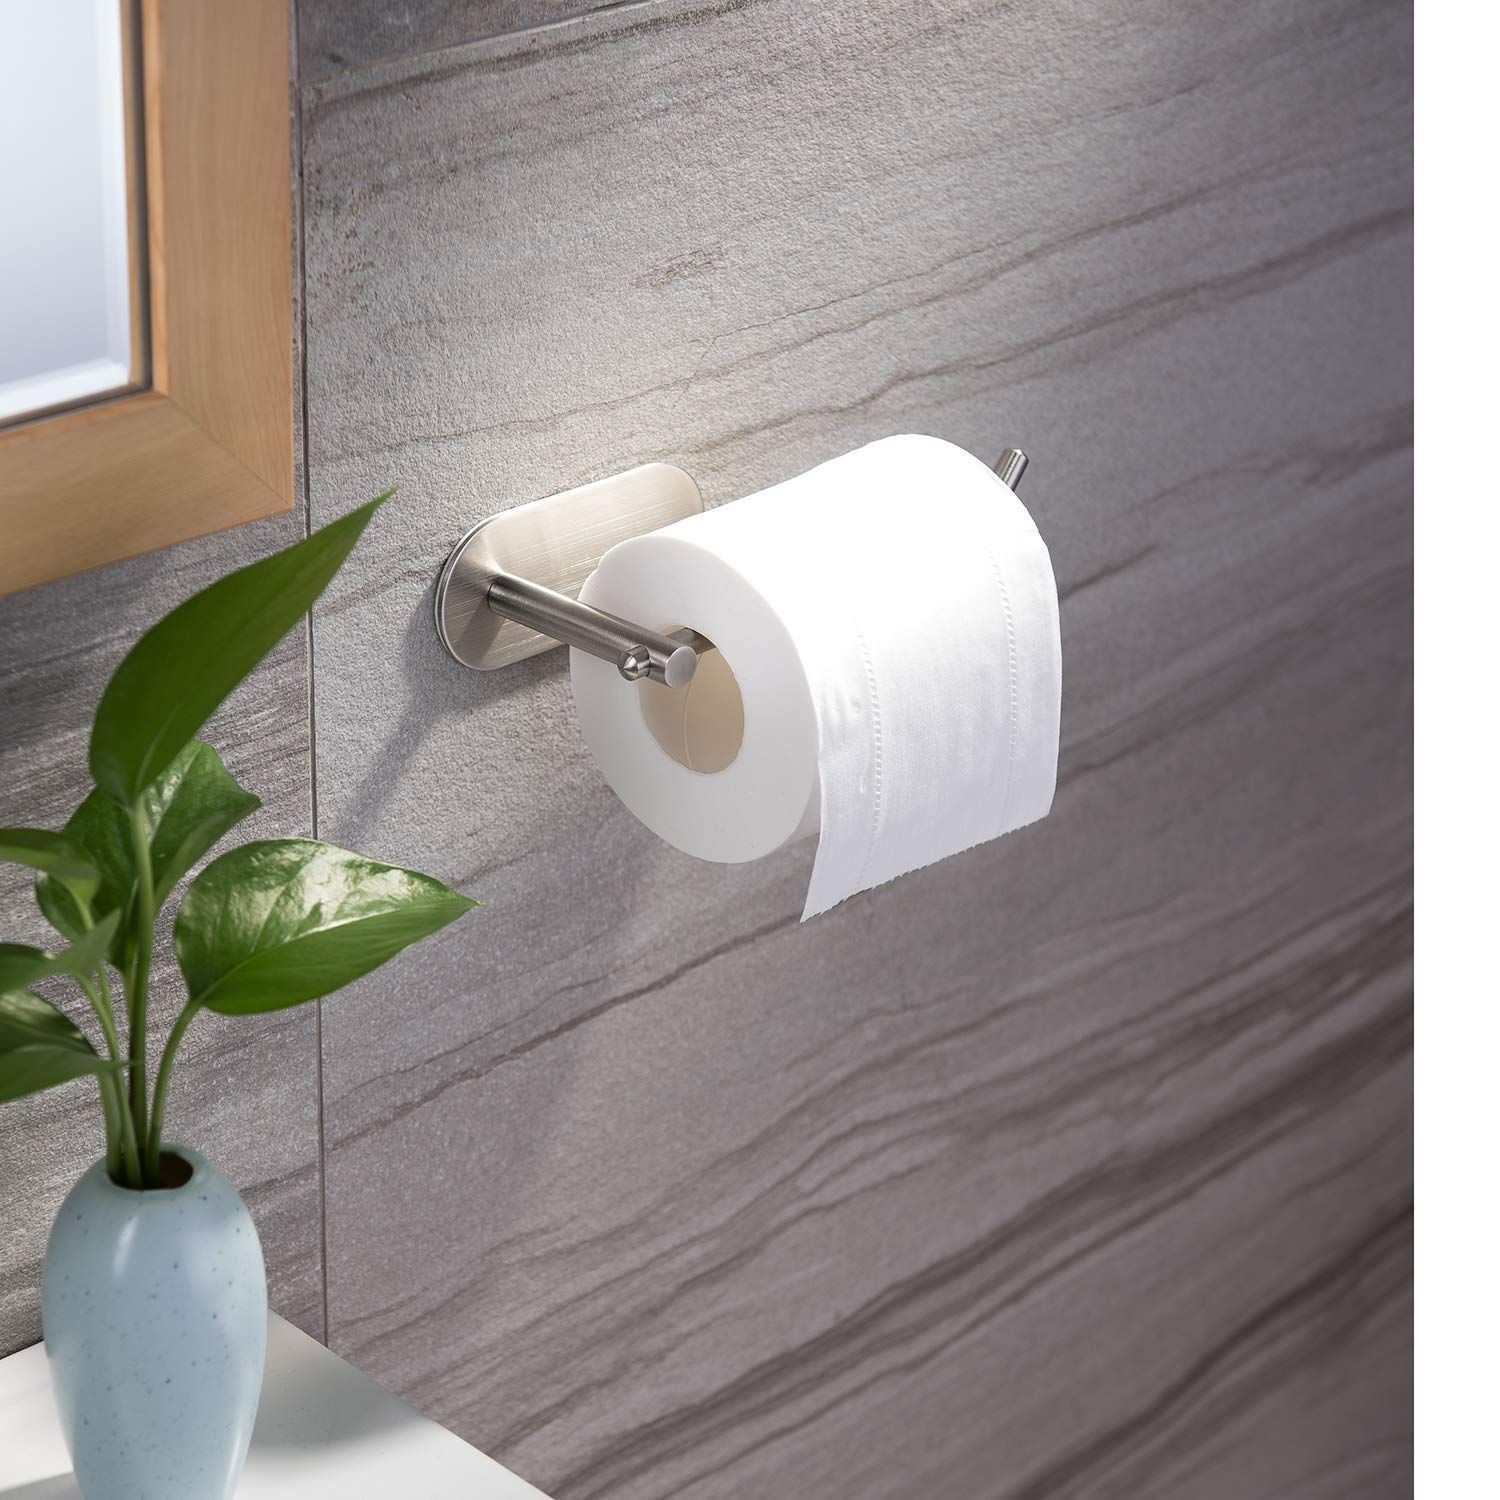 Yigii Adhesive Toilet Paper Holder Mst001 Self Adhesive Toilet Roll Holder For Bathroom Kitchen Stick On Wa Toilet Paper Holder Toilet Roll Holder Toilet Paper